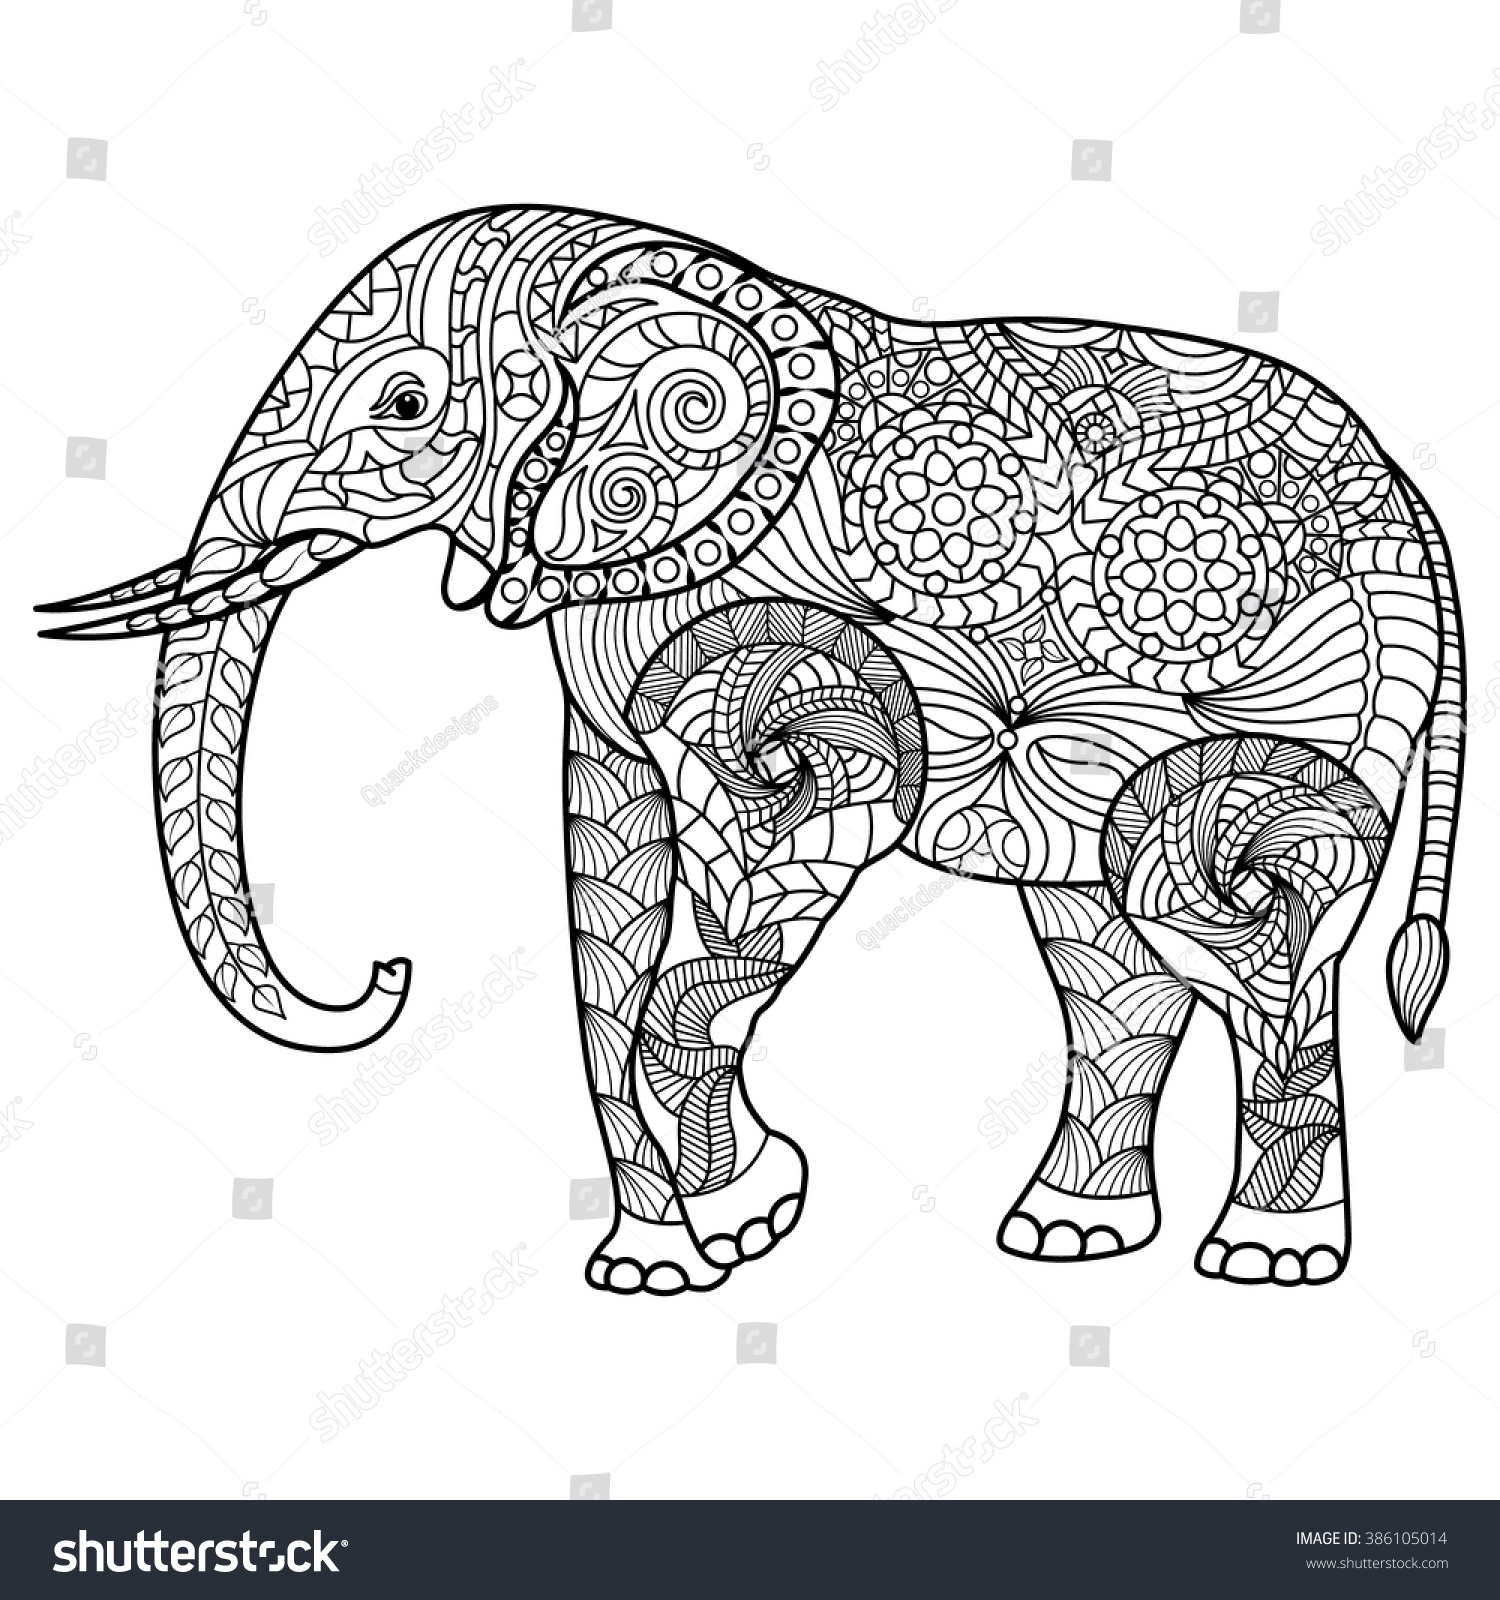 Elephant Coloring Page Graceful And Exquisite Style 386105014